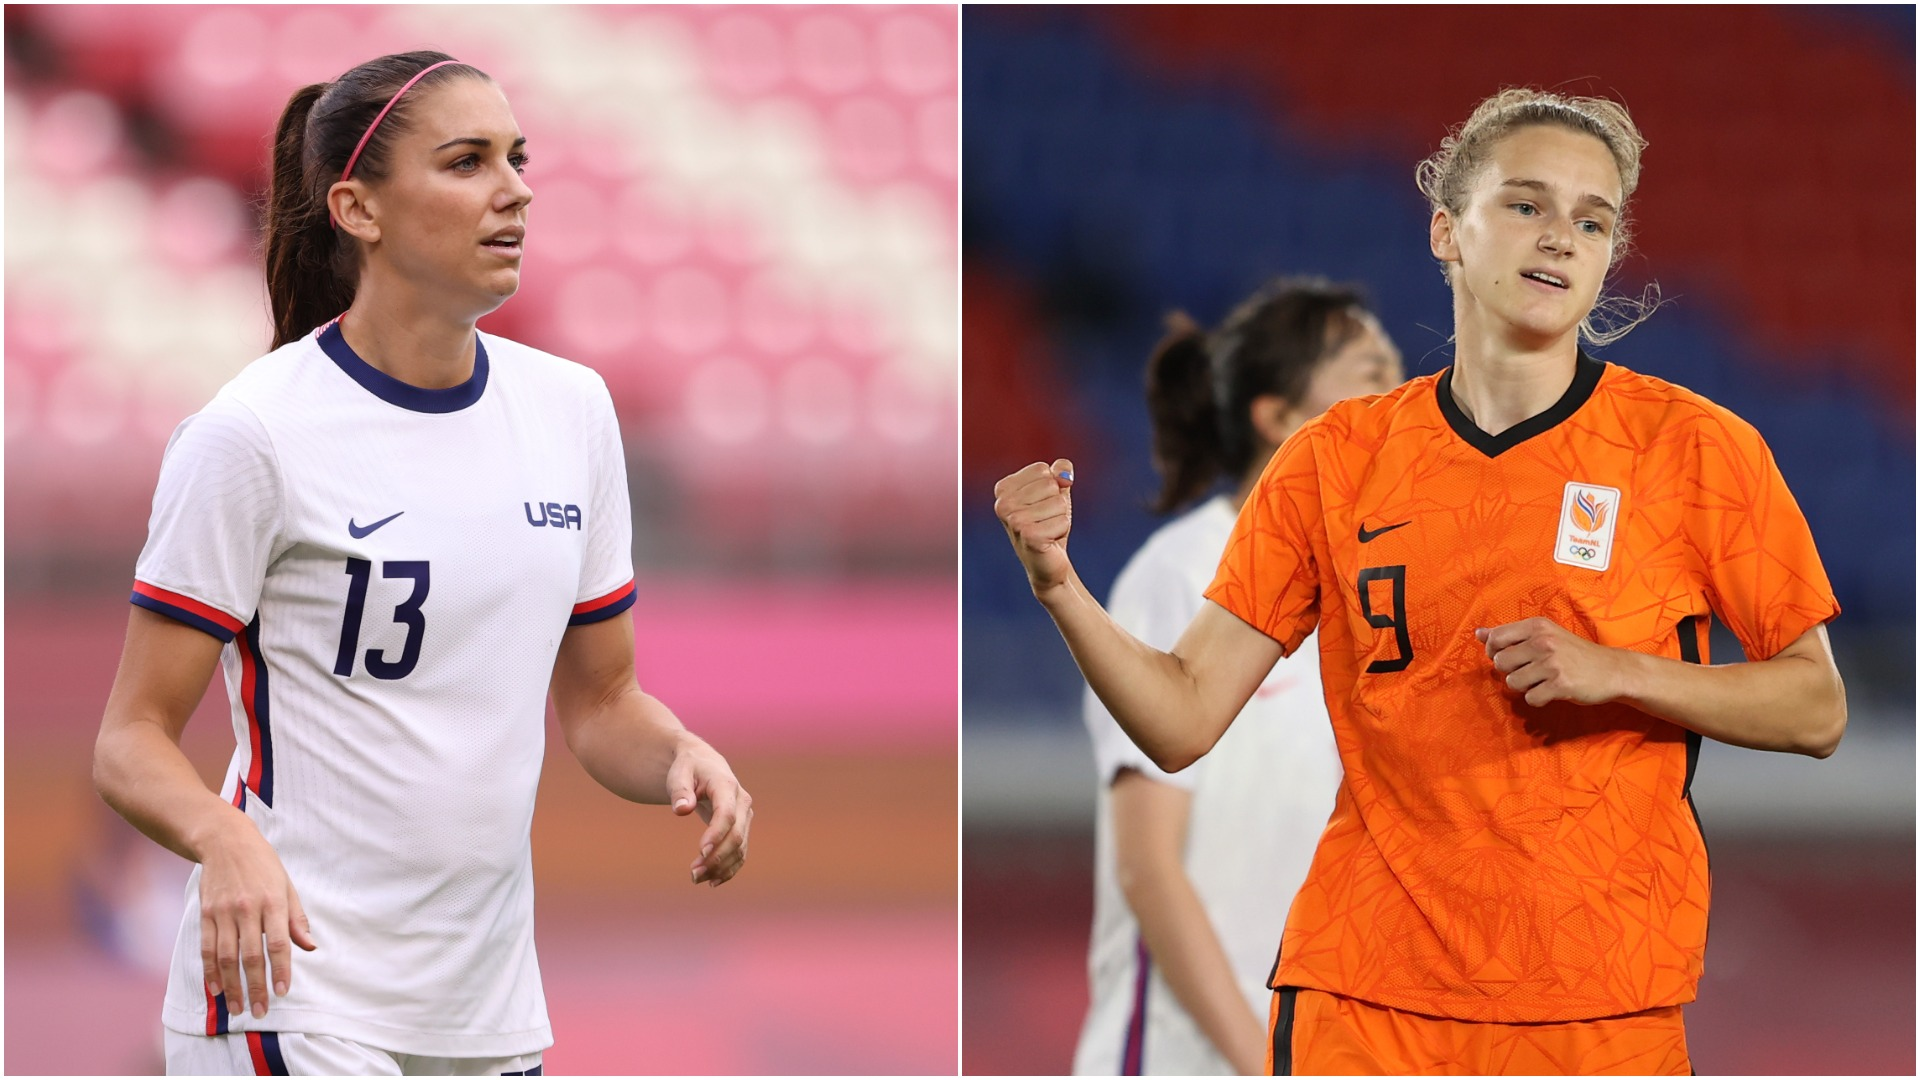 How to Watch USWNT vs. Netherlands in the Olympic Soccer Quarterfinals